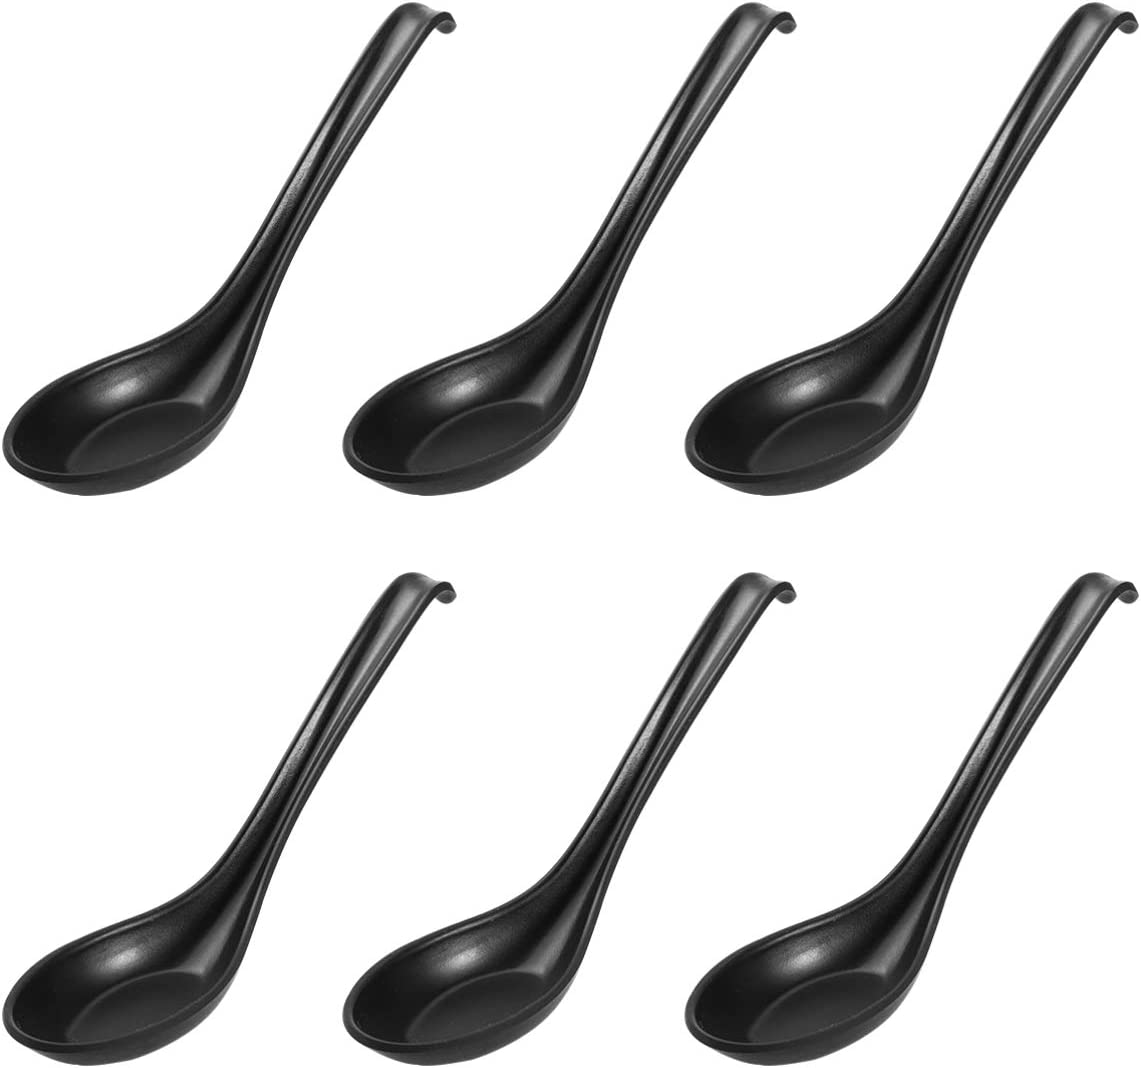 BESTONZON Soup Spoons,6pcs Japanese Style Melamine Spoons Creative Rice Spoons Chinese Asian Soup Spoons With Long Handle for Restaurants, Food shops, Catering Halls (Bright Surface/Hook Style)